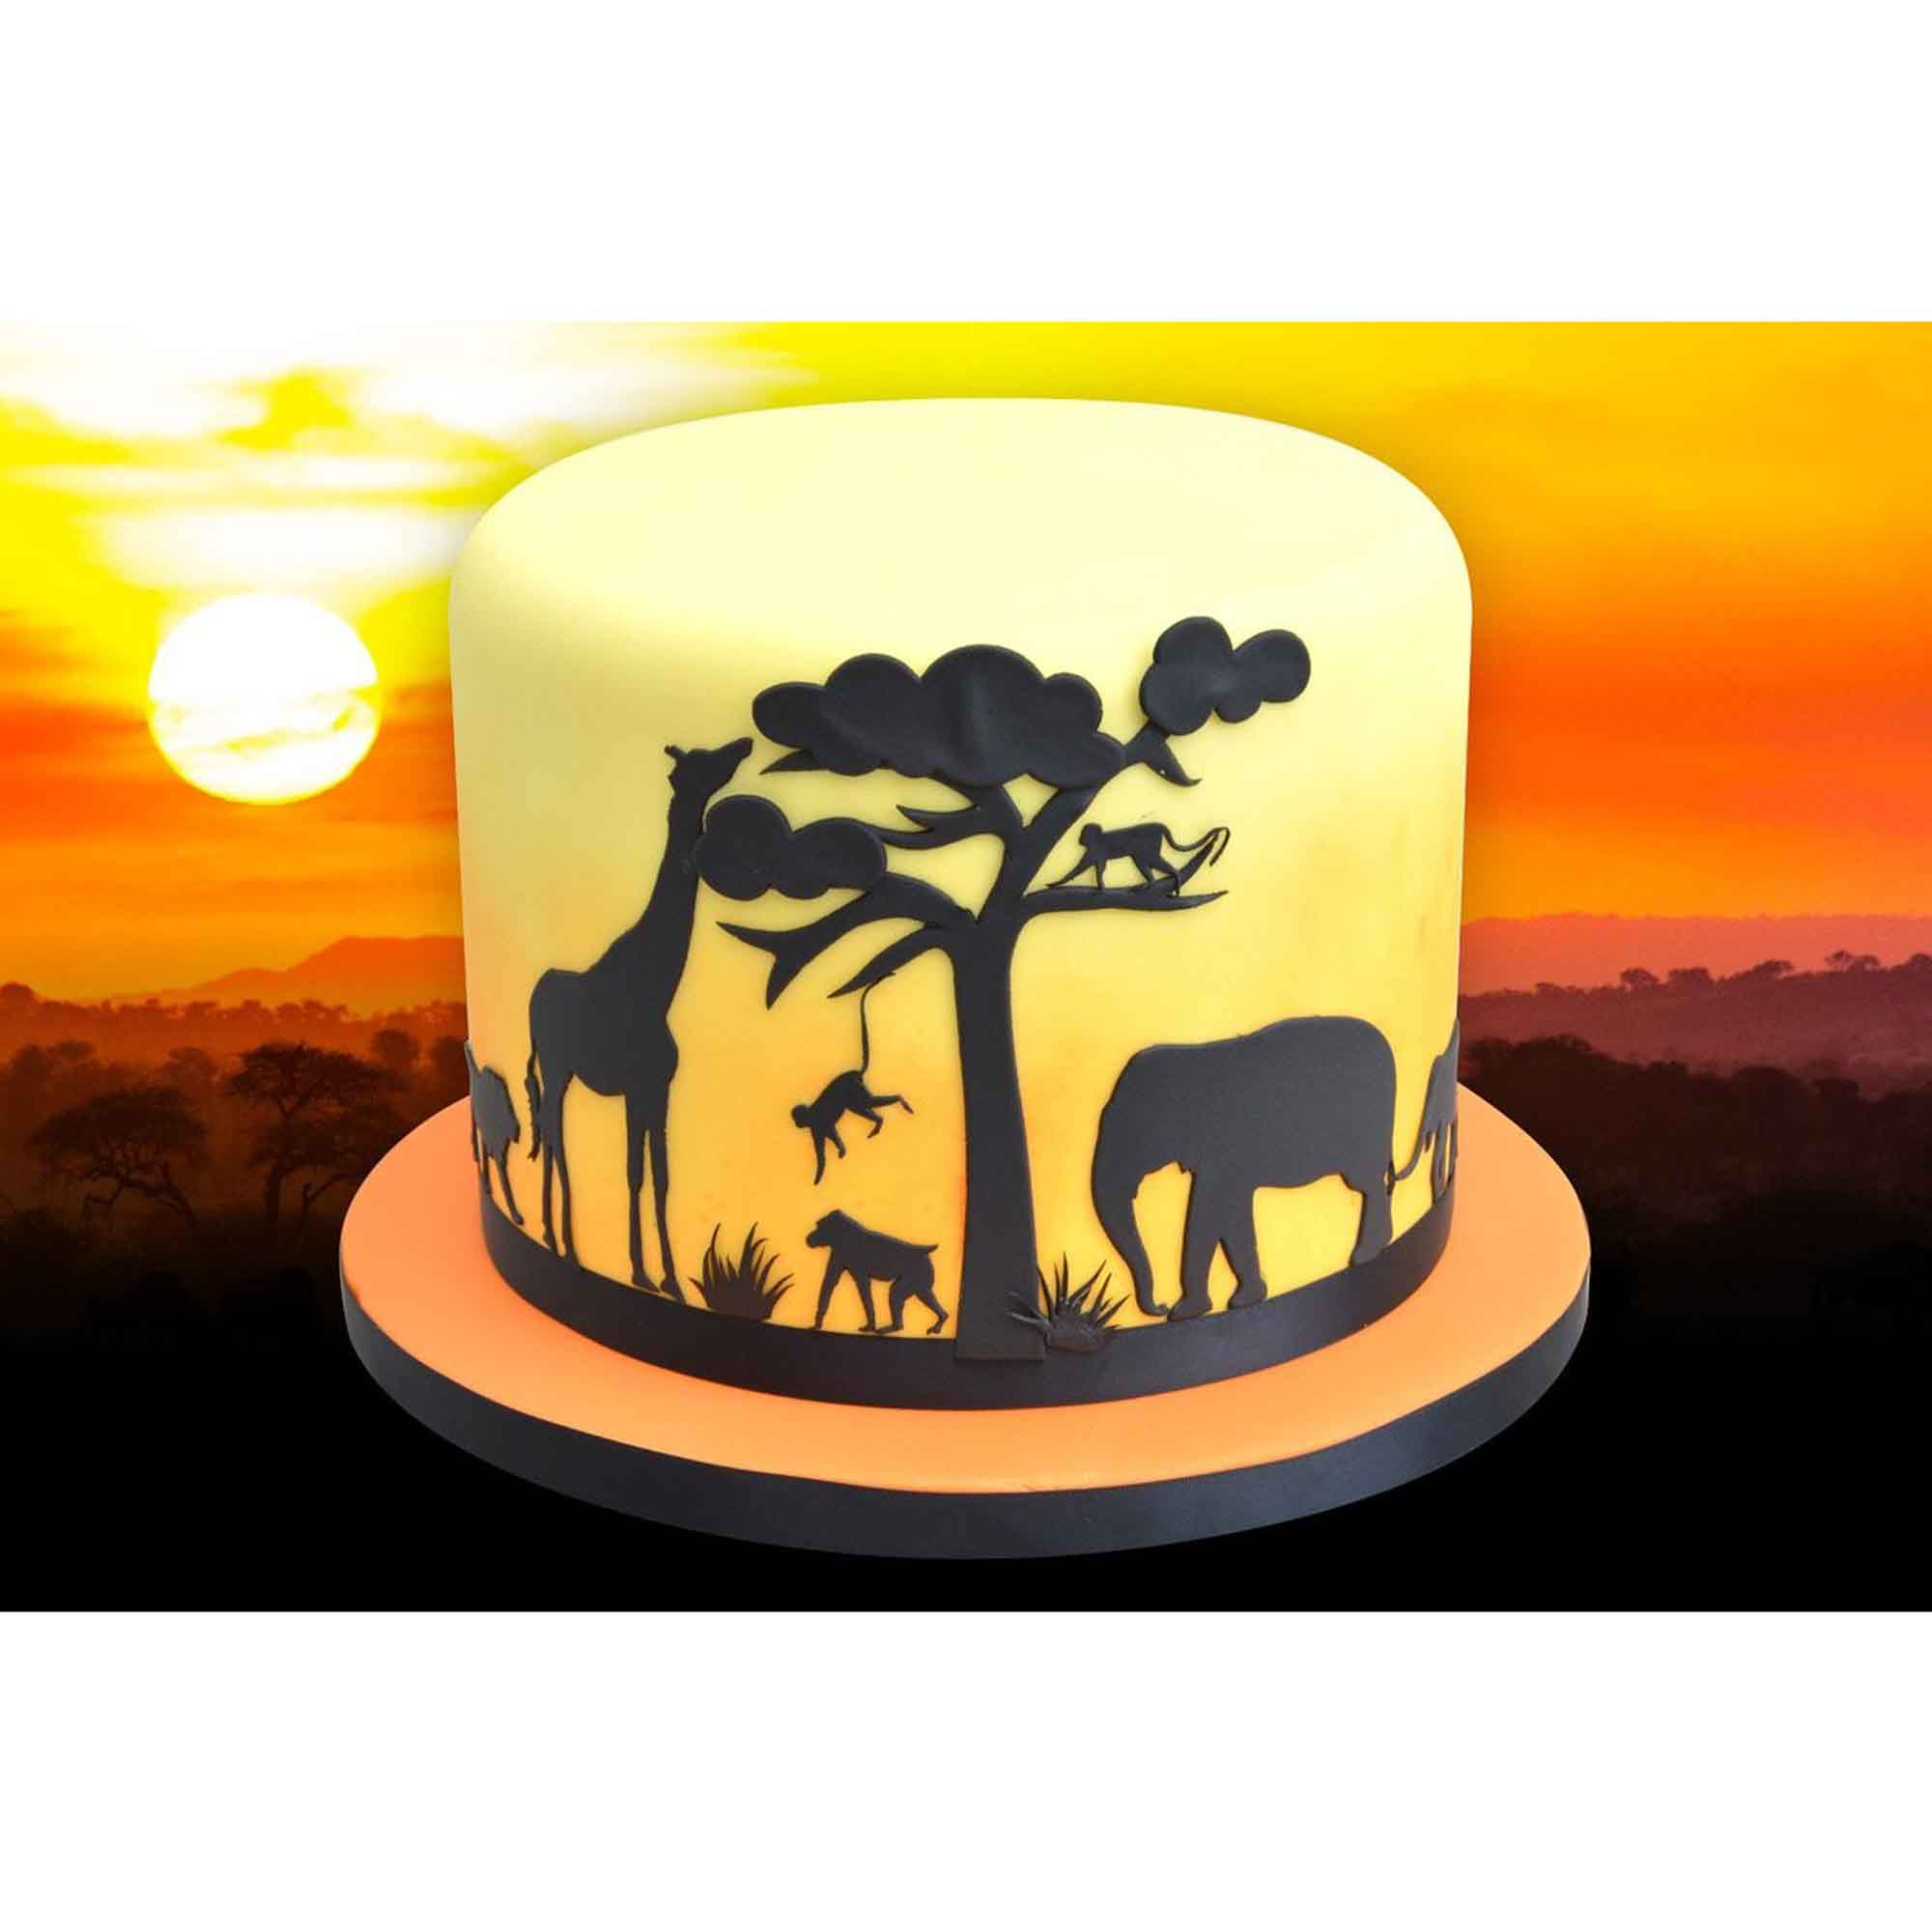 Patchwork Cutter Safari Silhouette Set Lollipop Cake